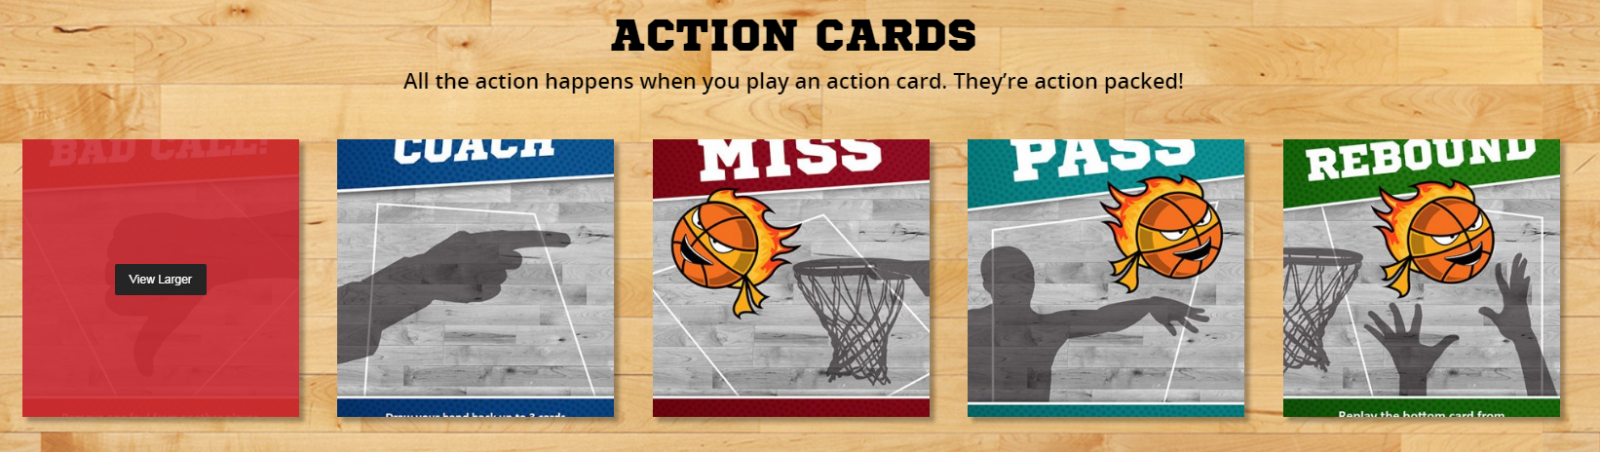 bball blitz action cards